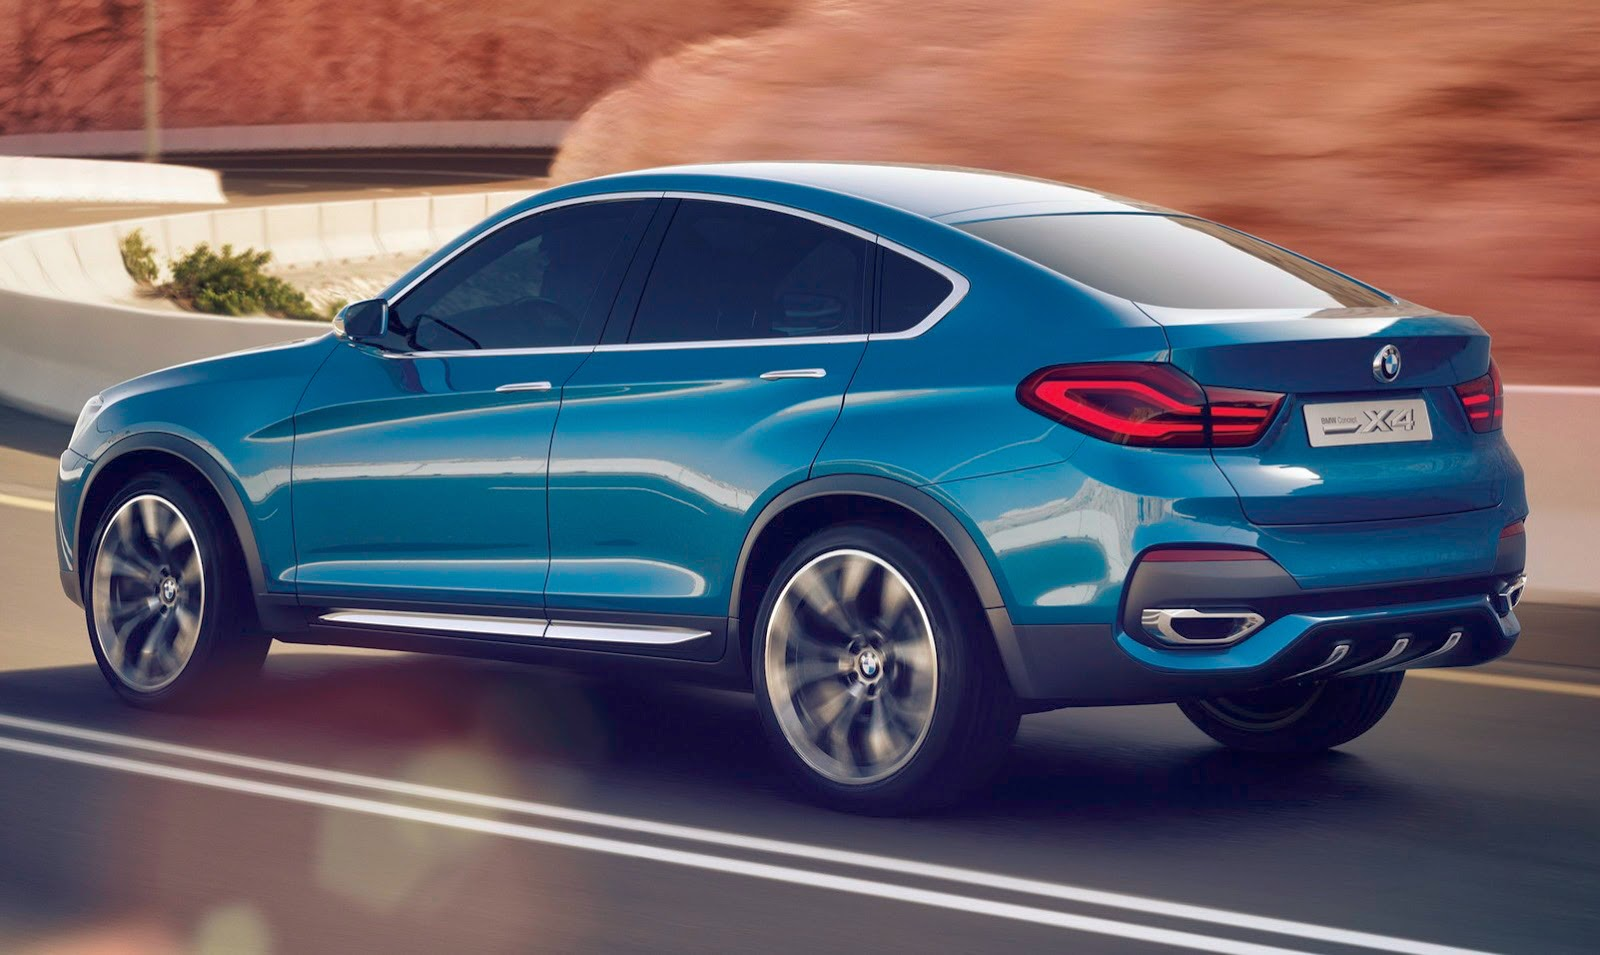 2015 New BMW X6 HD Wallpaper